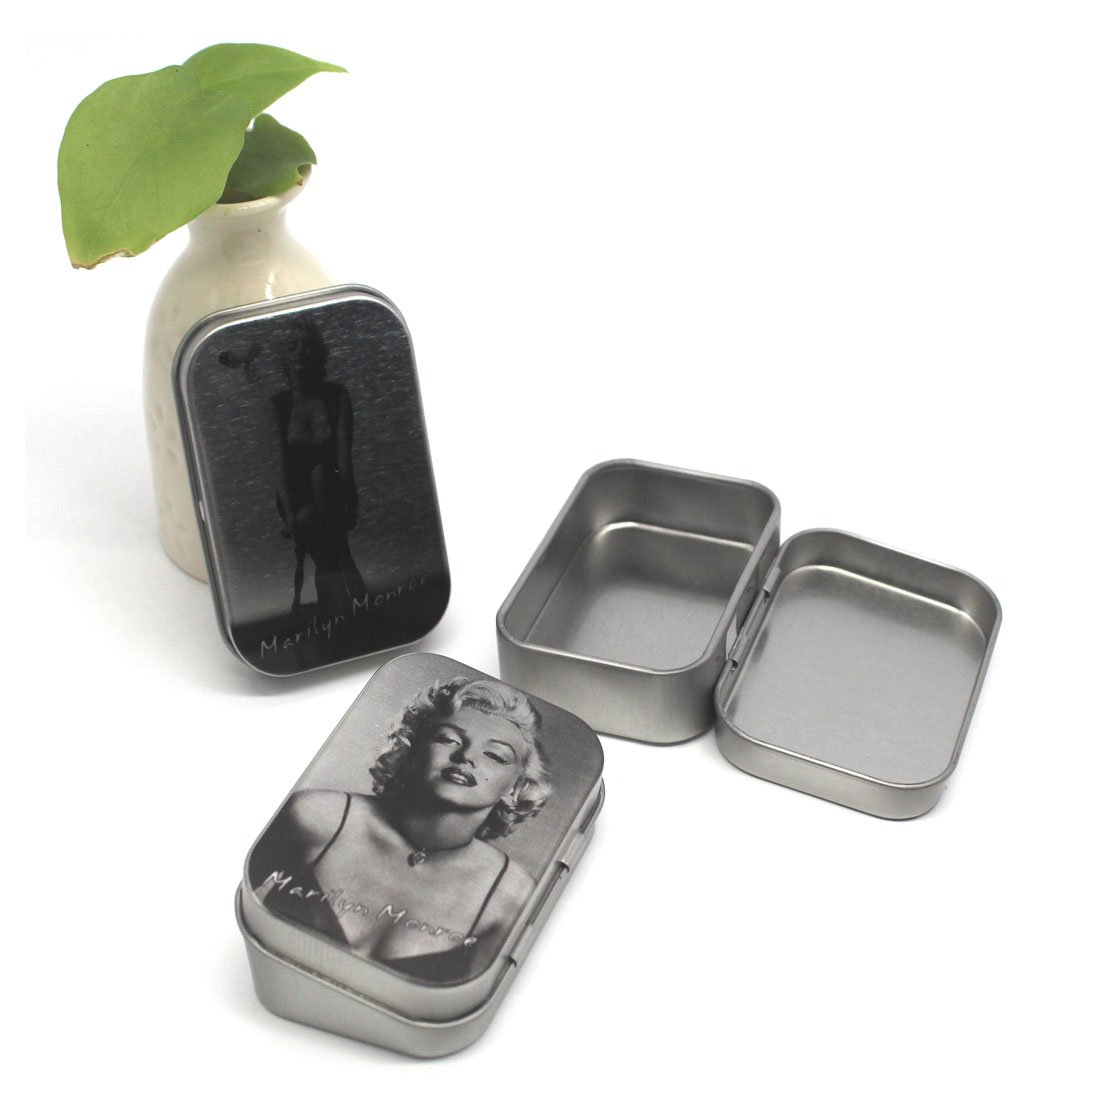 Aggice Small Tin Containers with Marilyn Monroe for Buttons,Coins,Trinkets,Small Objects 6 Pack Metal Tin Storage Boxes Marilyn Monroe